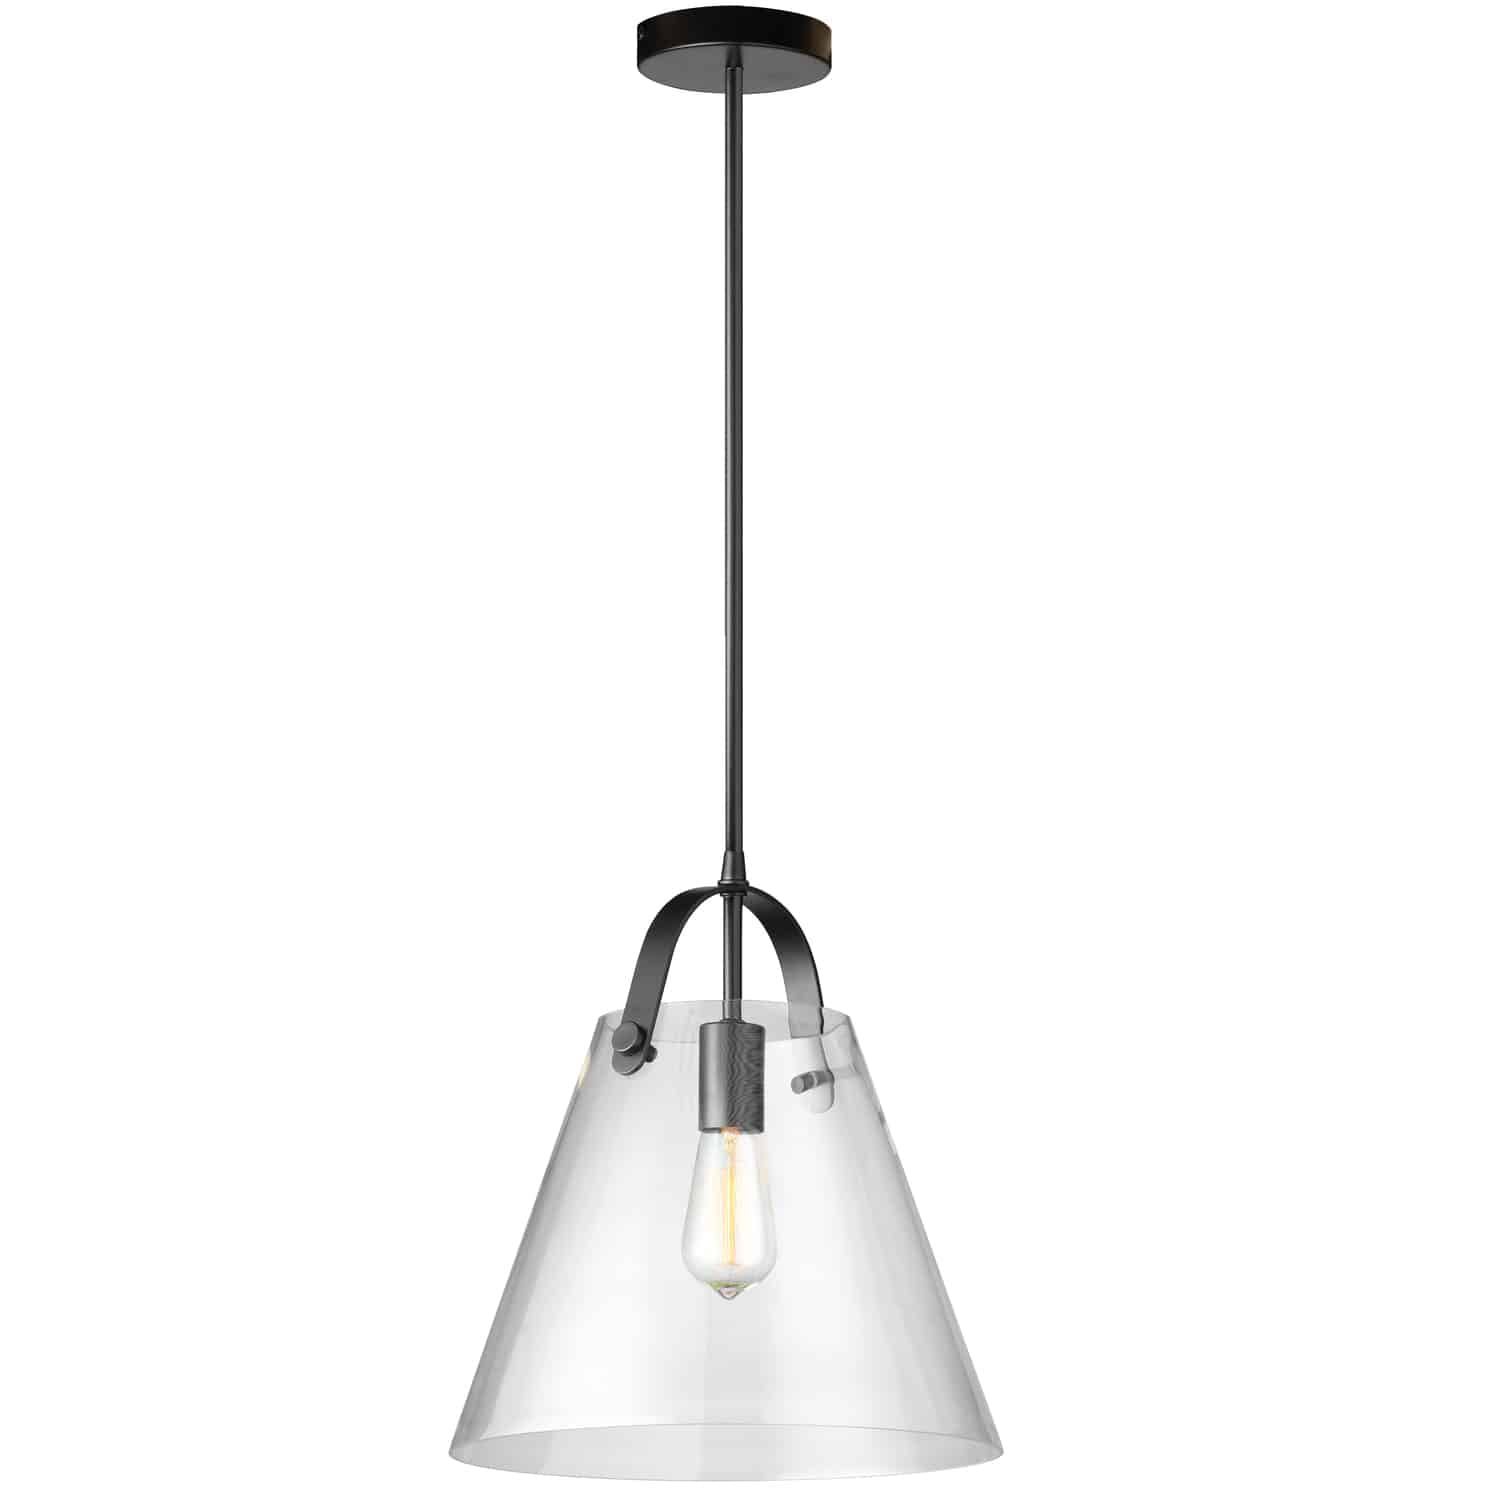 1 Light Incandescent Pendant Matte Black Finish with Clear Glass